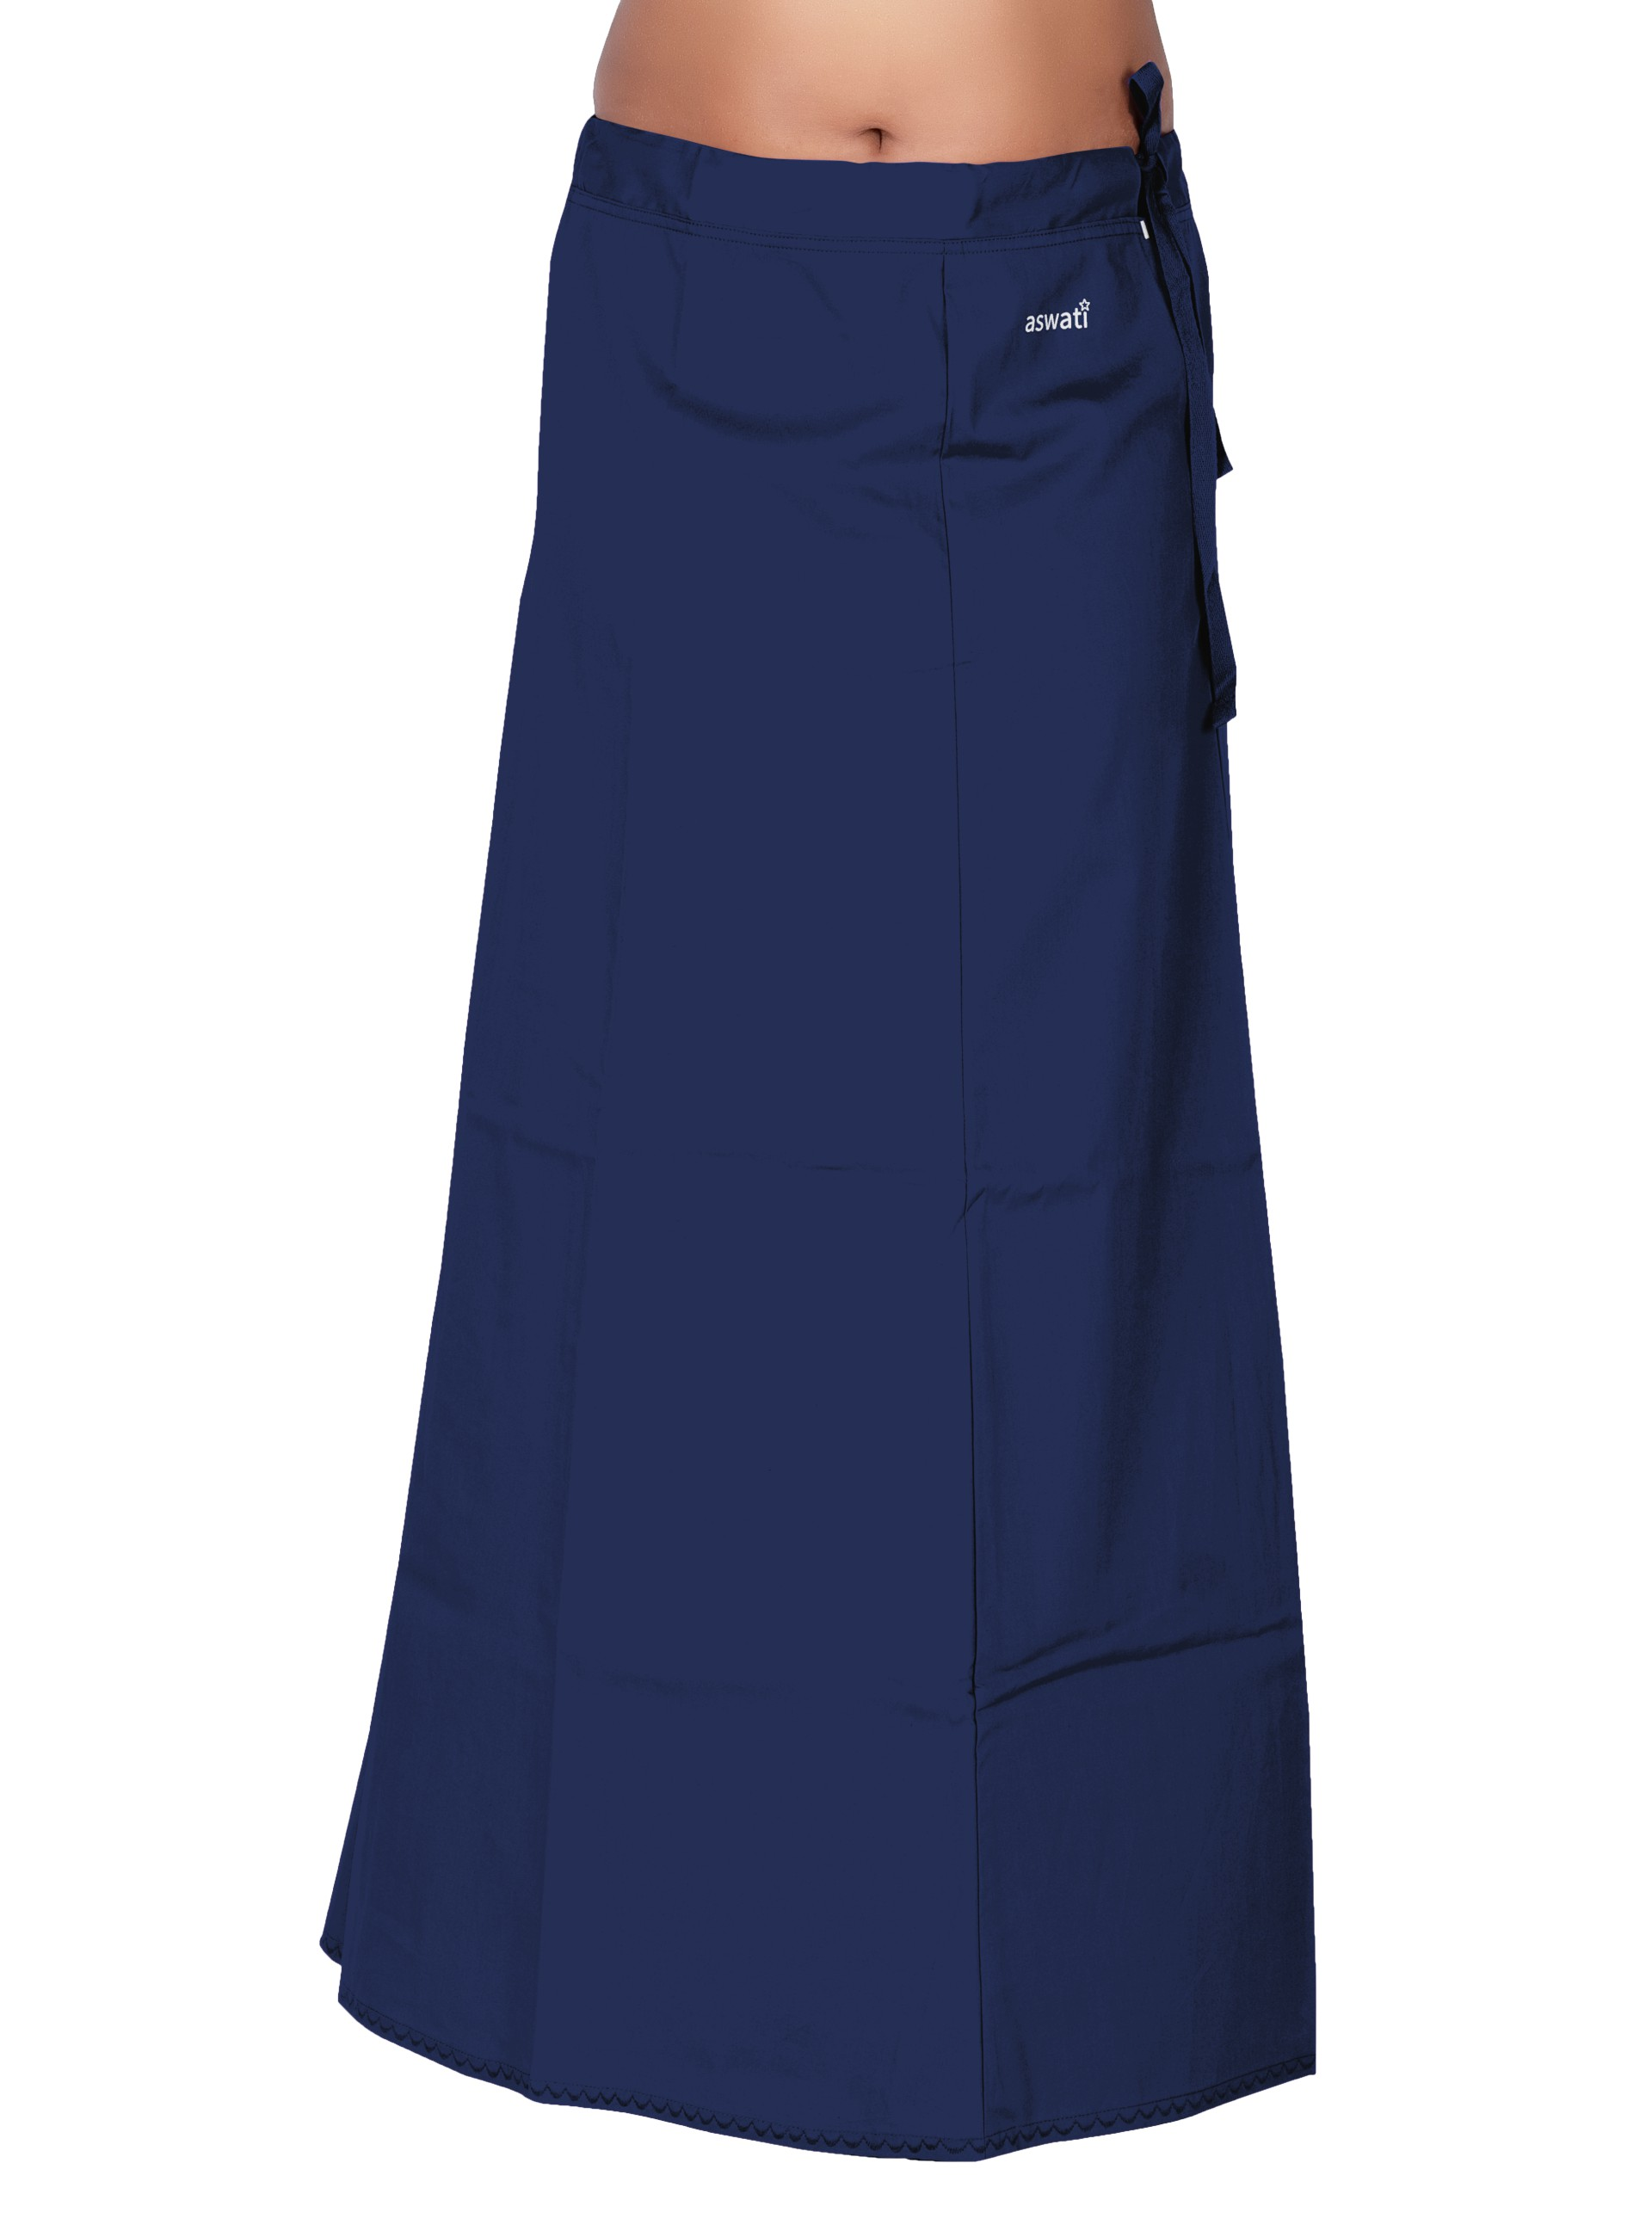 Navy Blue - Aswati Premium Inskirt (7 PART)